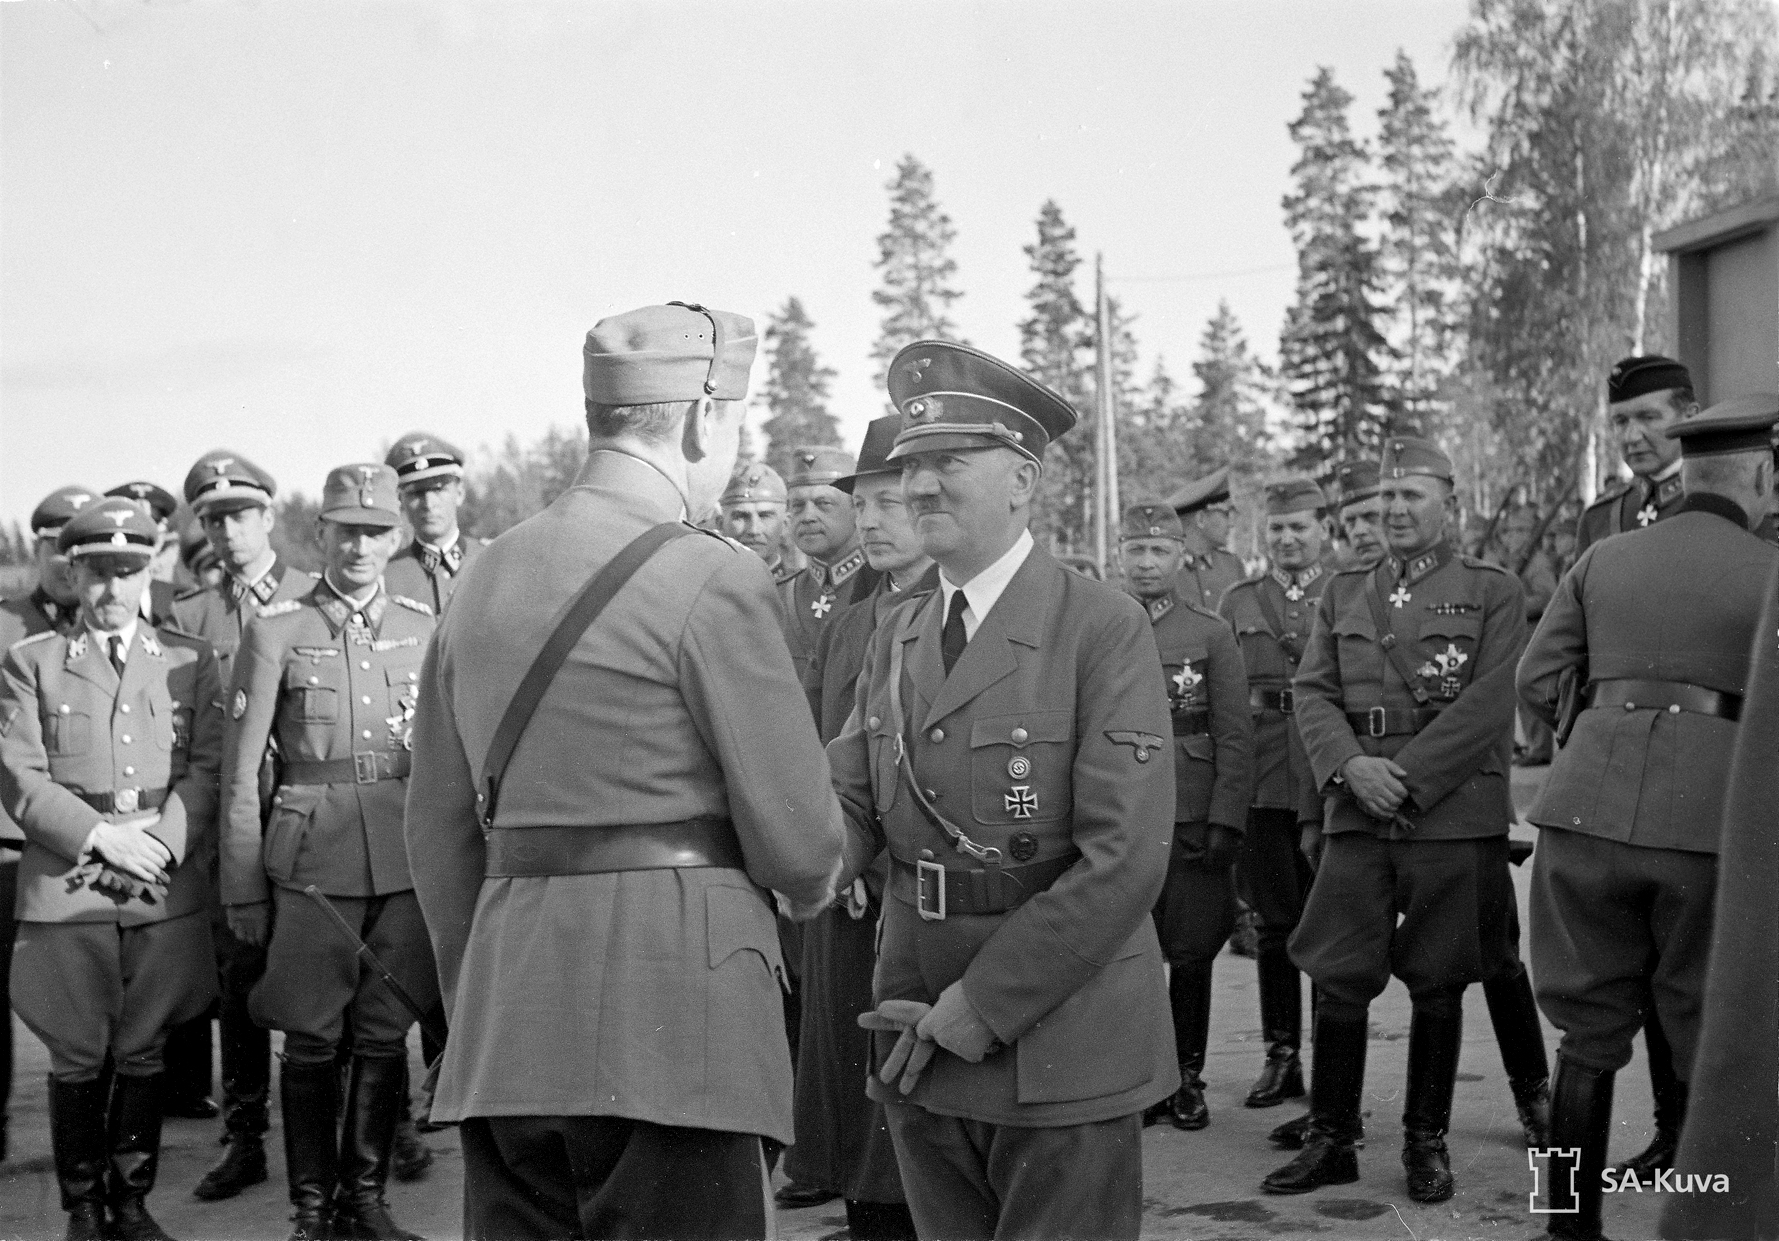 Adolf Hitler bids farewell to Mannerheim before his departure after his visit in Finland